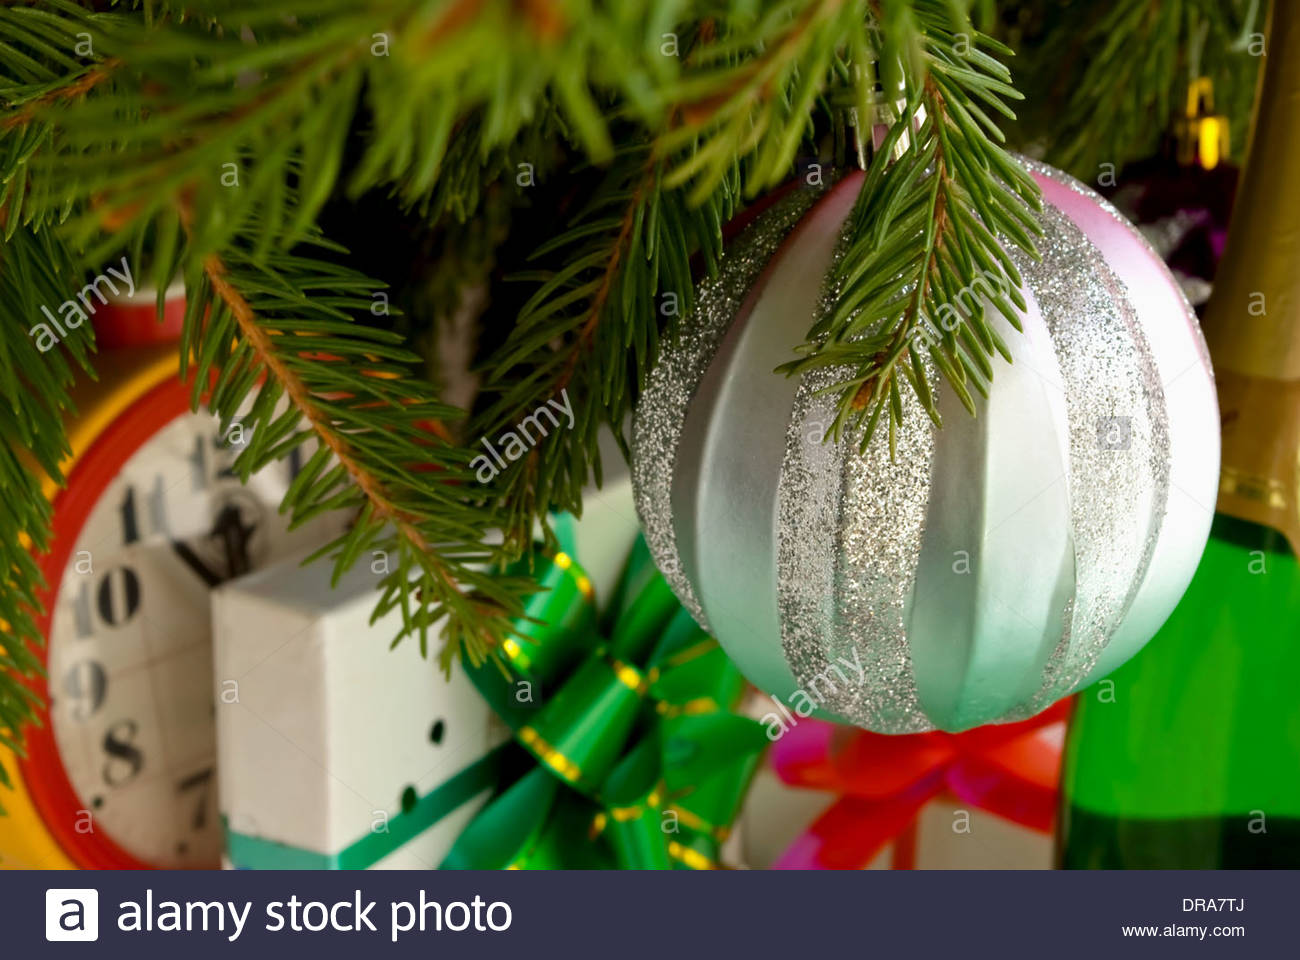 New year cristmas champaign - Stock Image